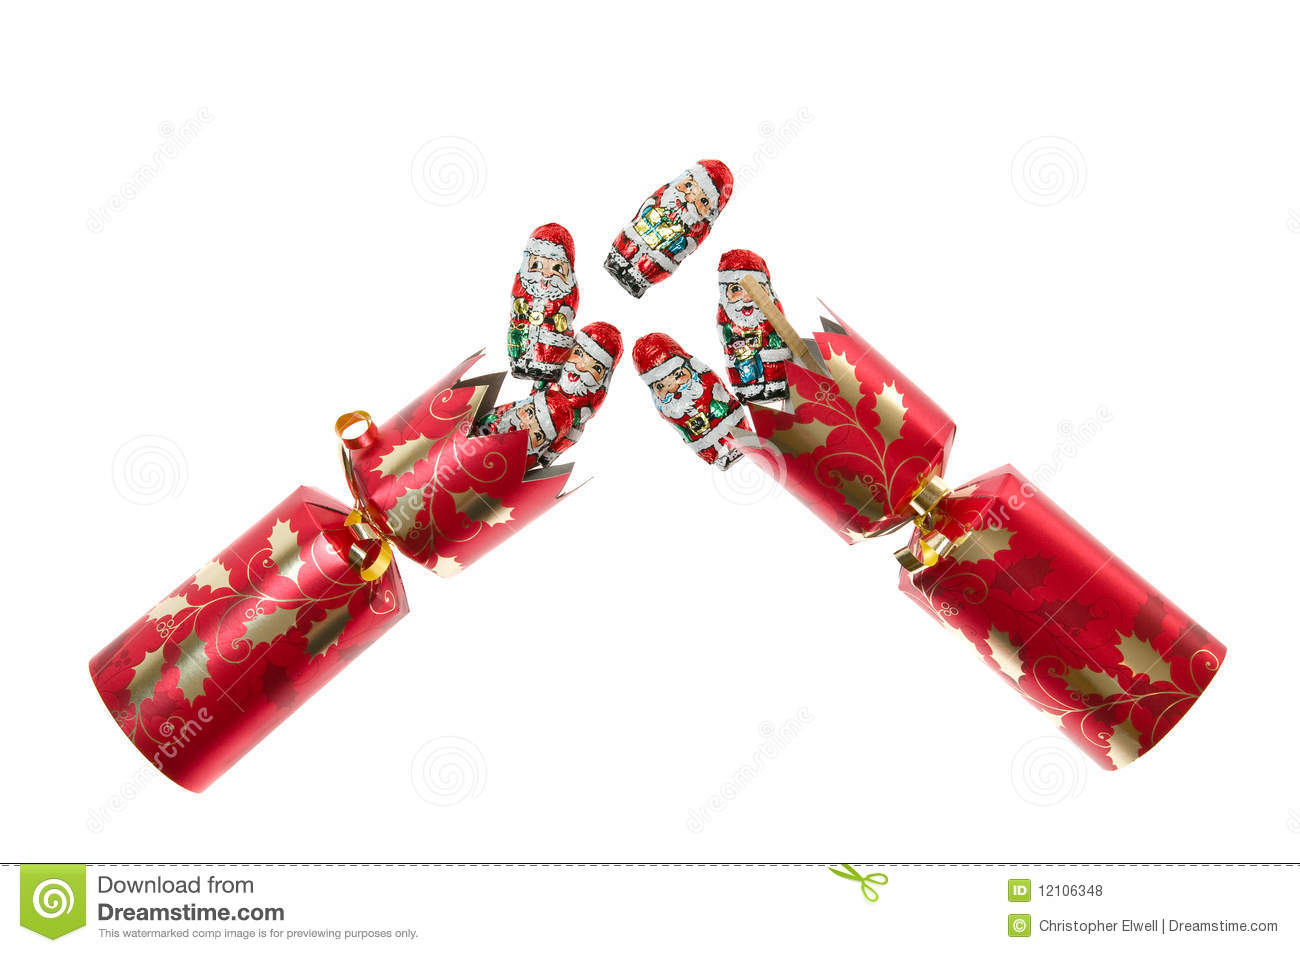 Christmas cracker png, vectors, psd, and clipart for free download.